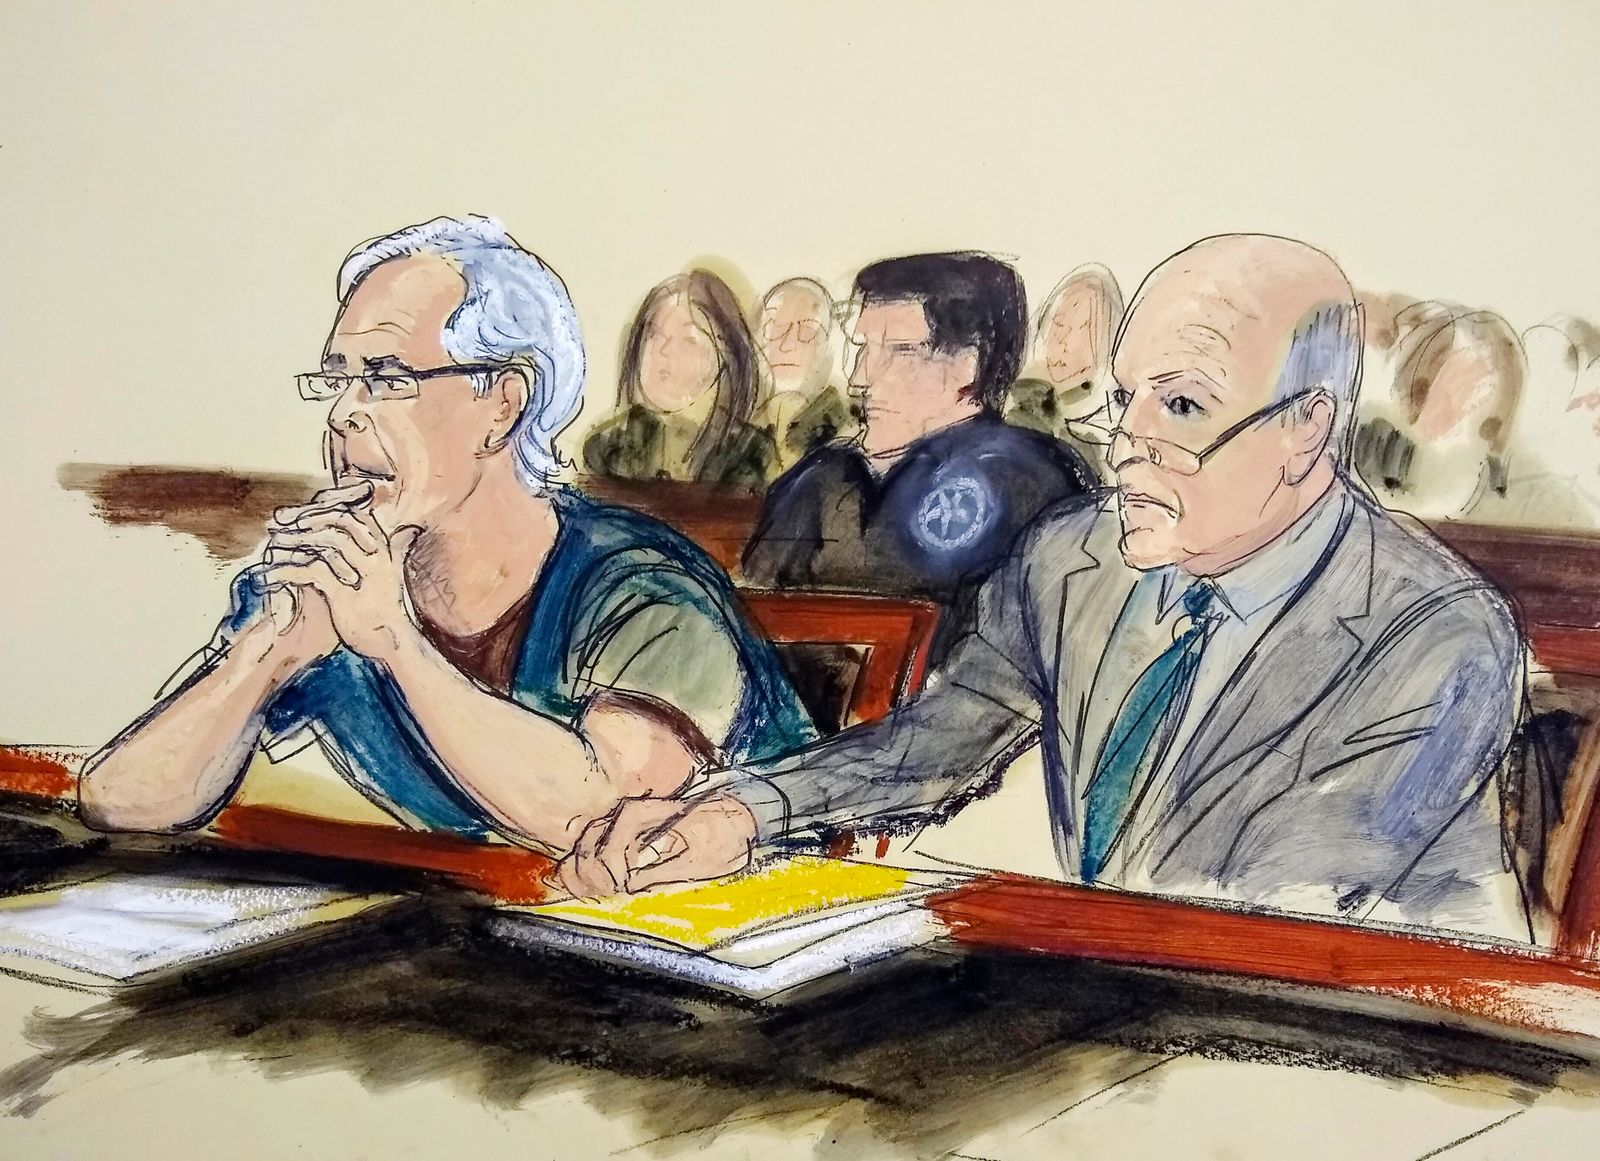 FILE - In this July 15, 2019 courtroom artist's sketch, defendant Jeffrey Epstein, left, and his attorney Martin Weinberg listen during a bail hearing in federal court, in New York. (Elizabeth Williams via AP, File)